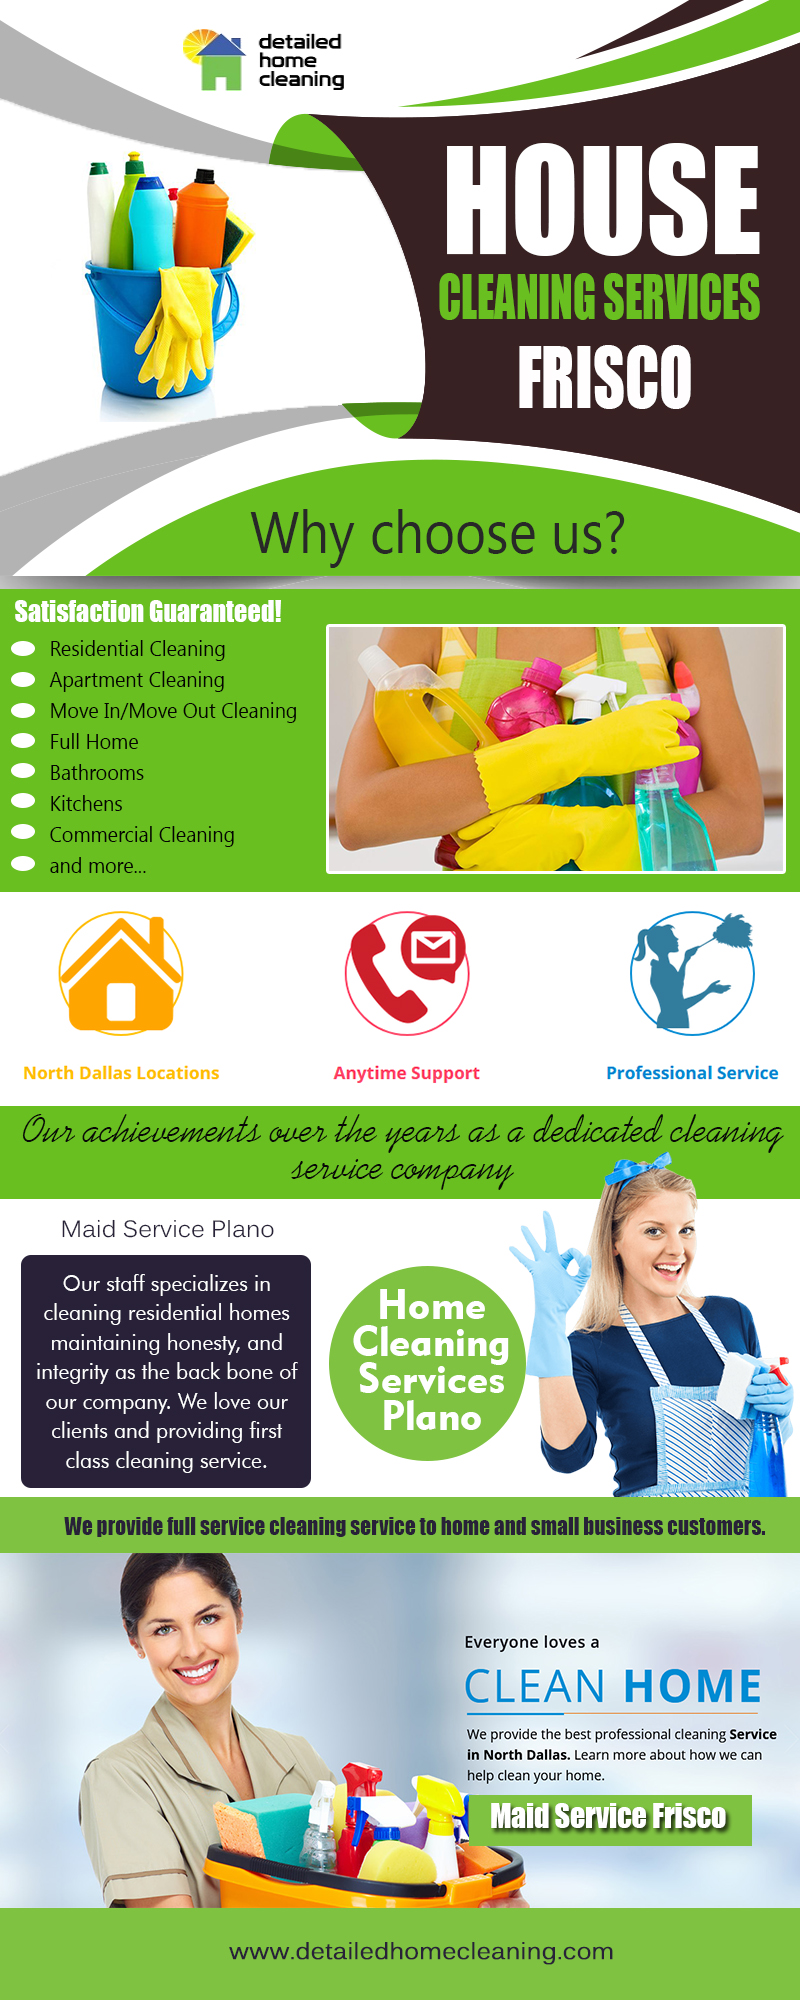 House Cleaning Services Frisco